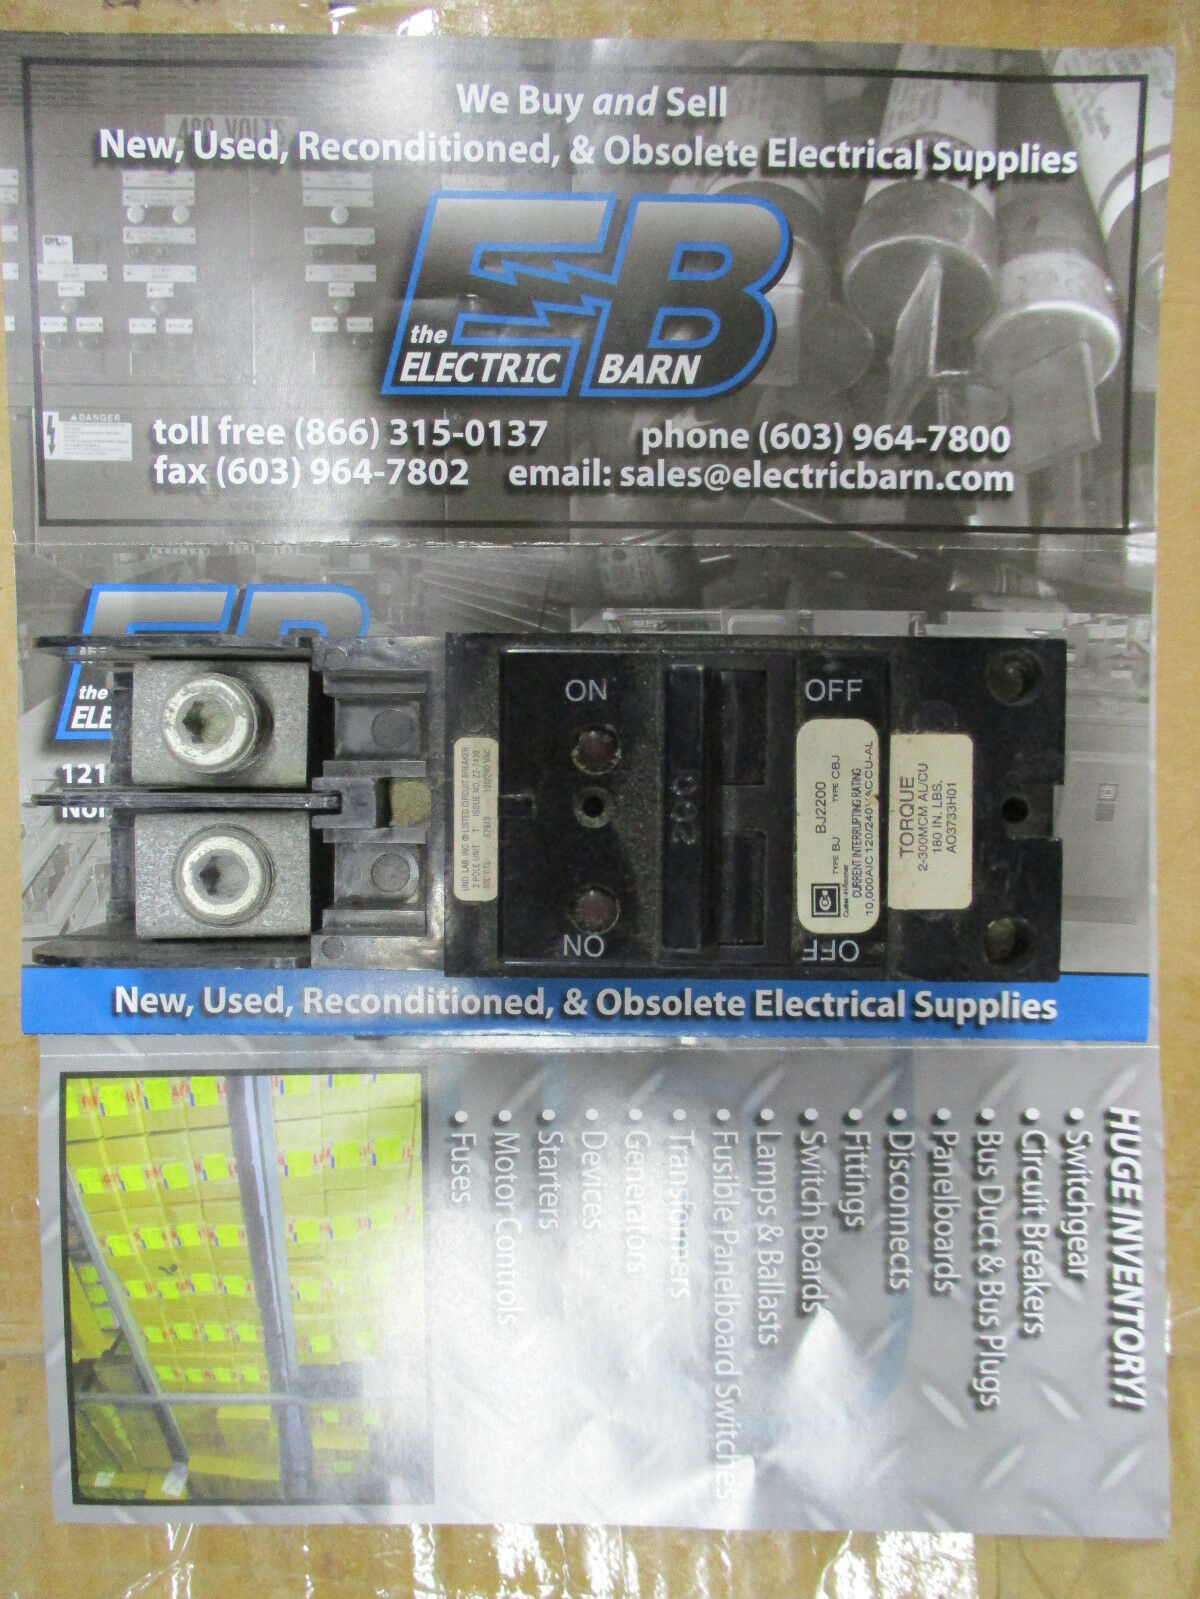 Cutler Hammer Bj2200 2 Pole 200 Amp 240 Volt Circuit Breaker 200amp Main With 60amp Generator Warranty 1 Of 1only 0 Available See More